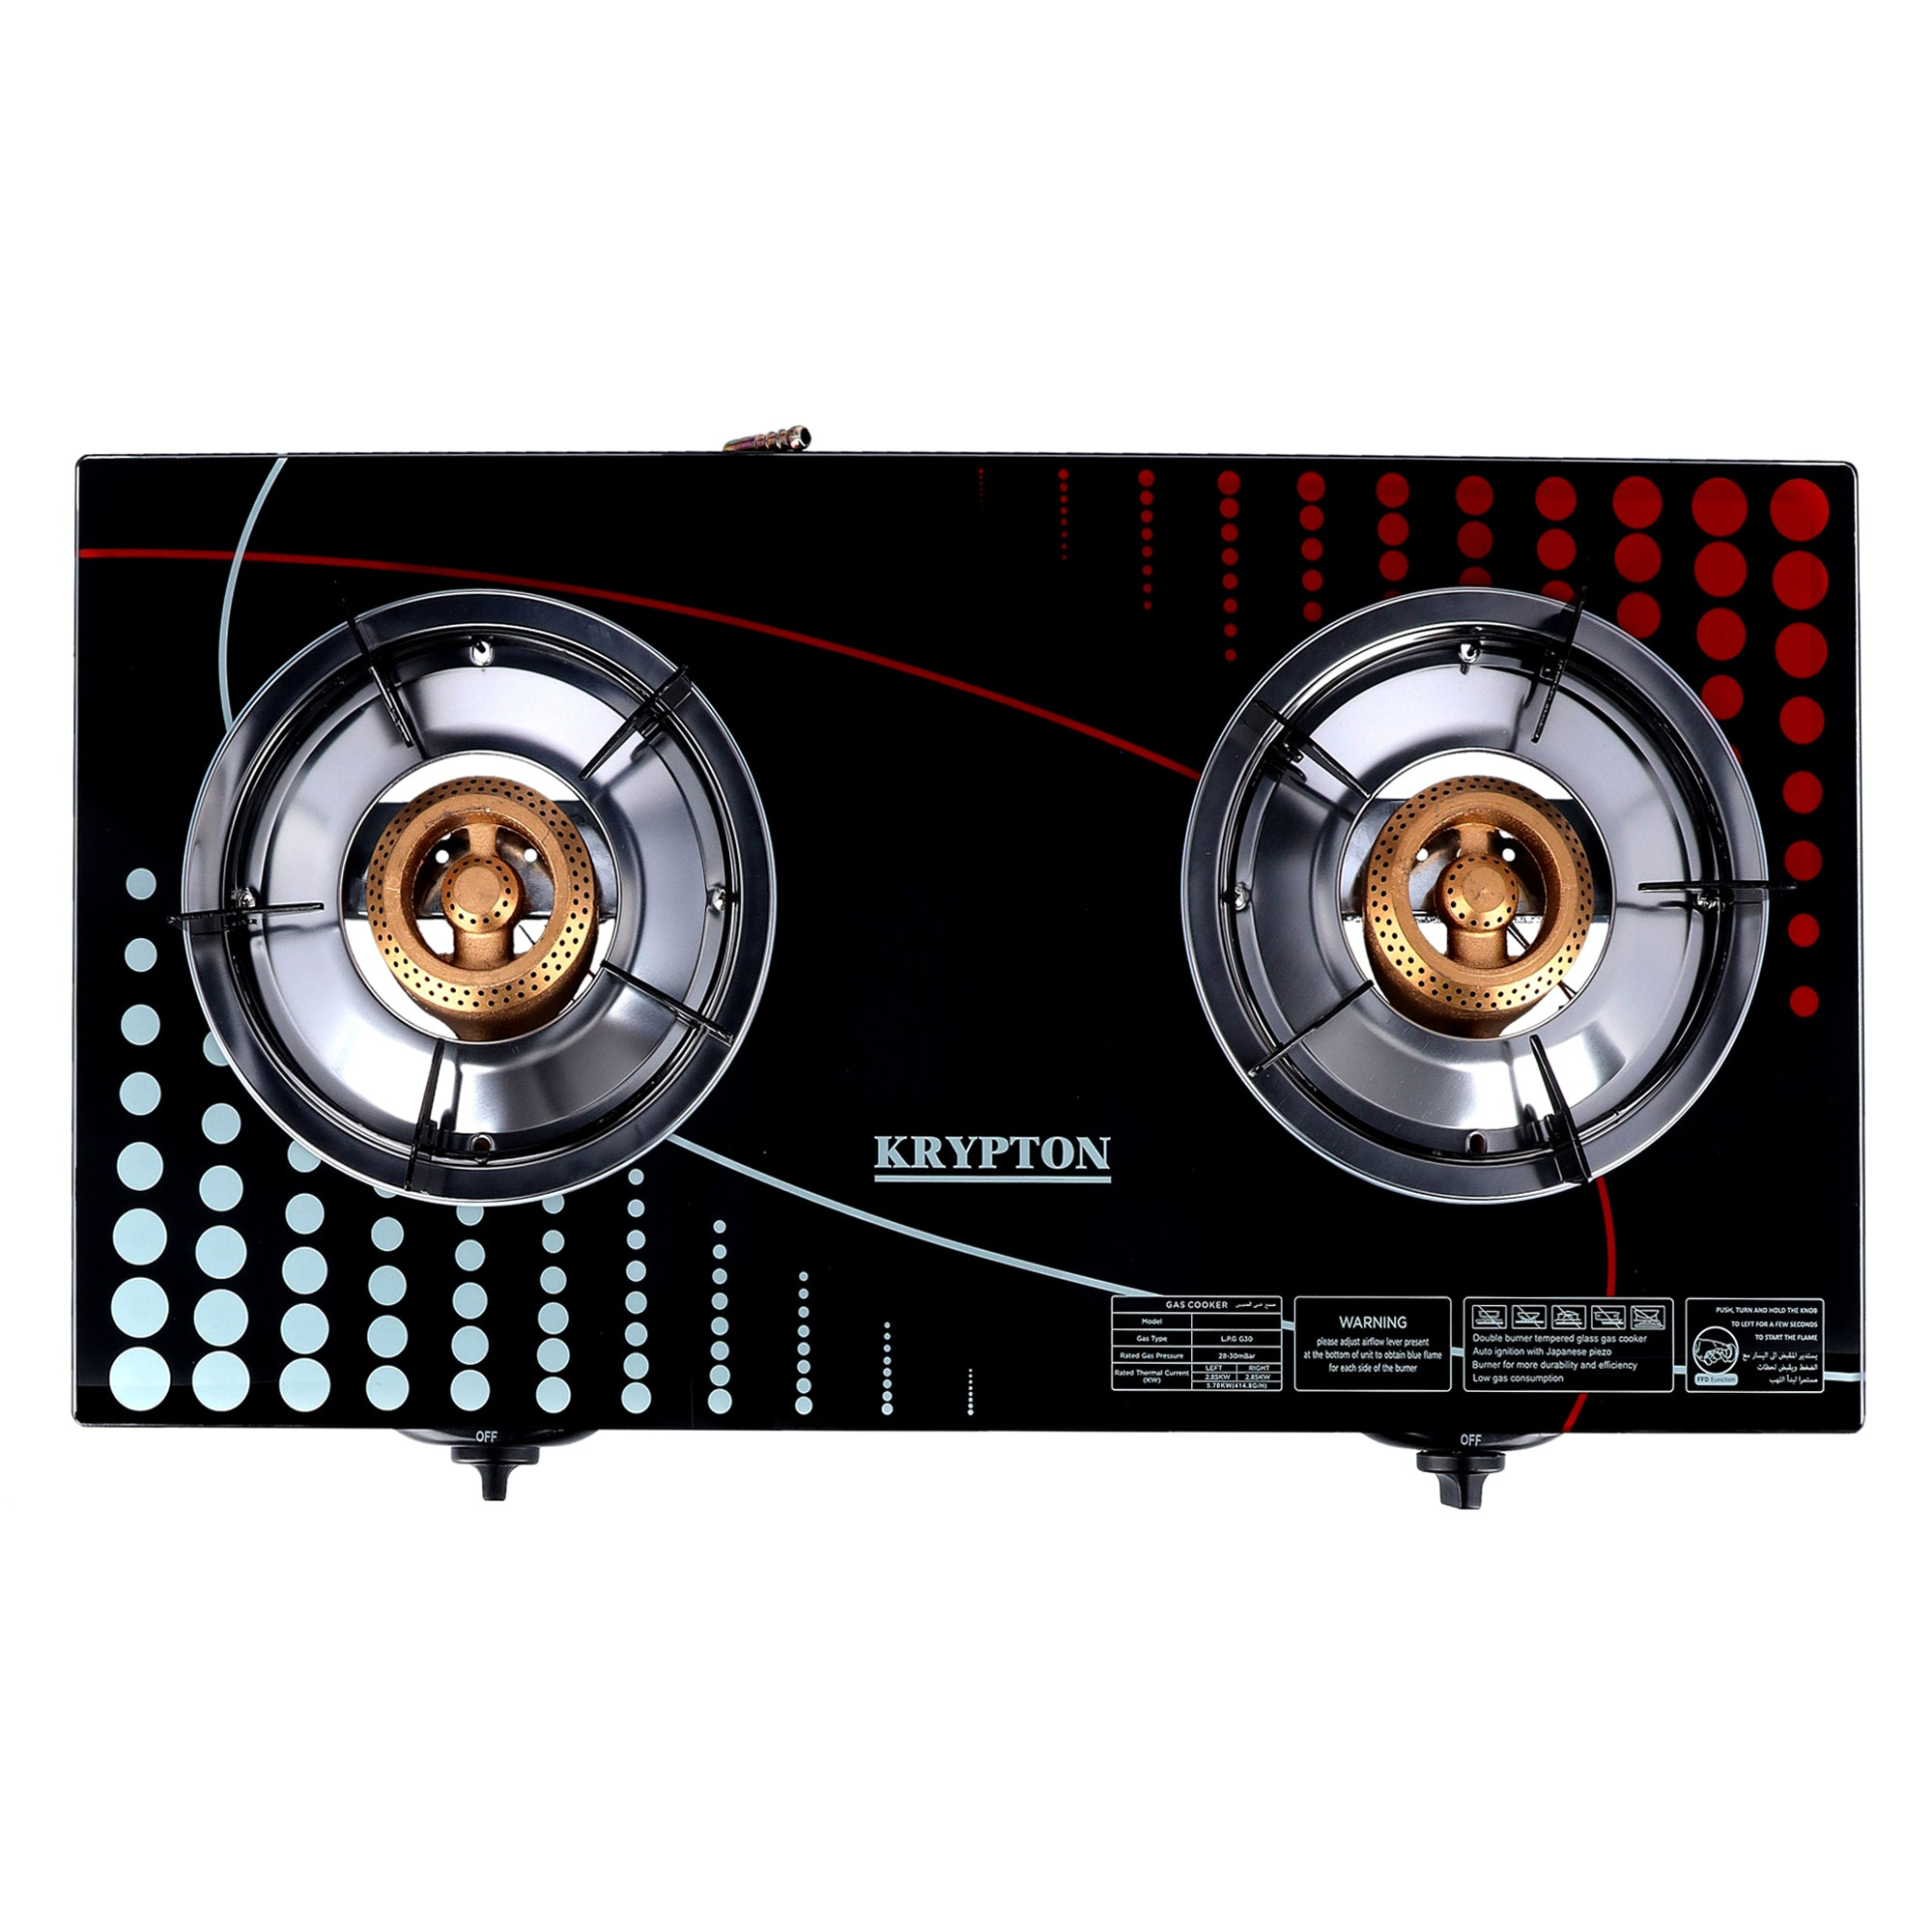 Tempered Glass Double Burner Gas Stove - Auto Ignition - Stainless-Steel Drip Pan - Glass Top